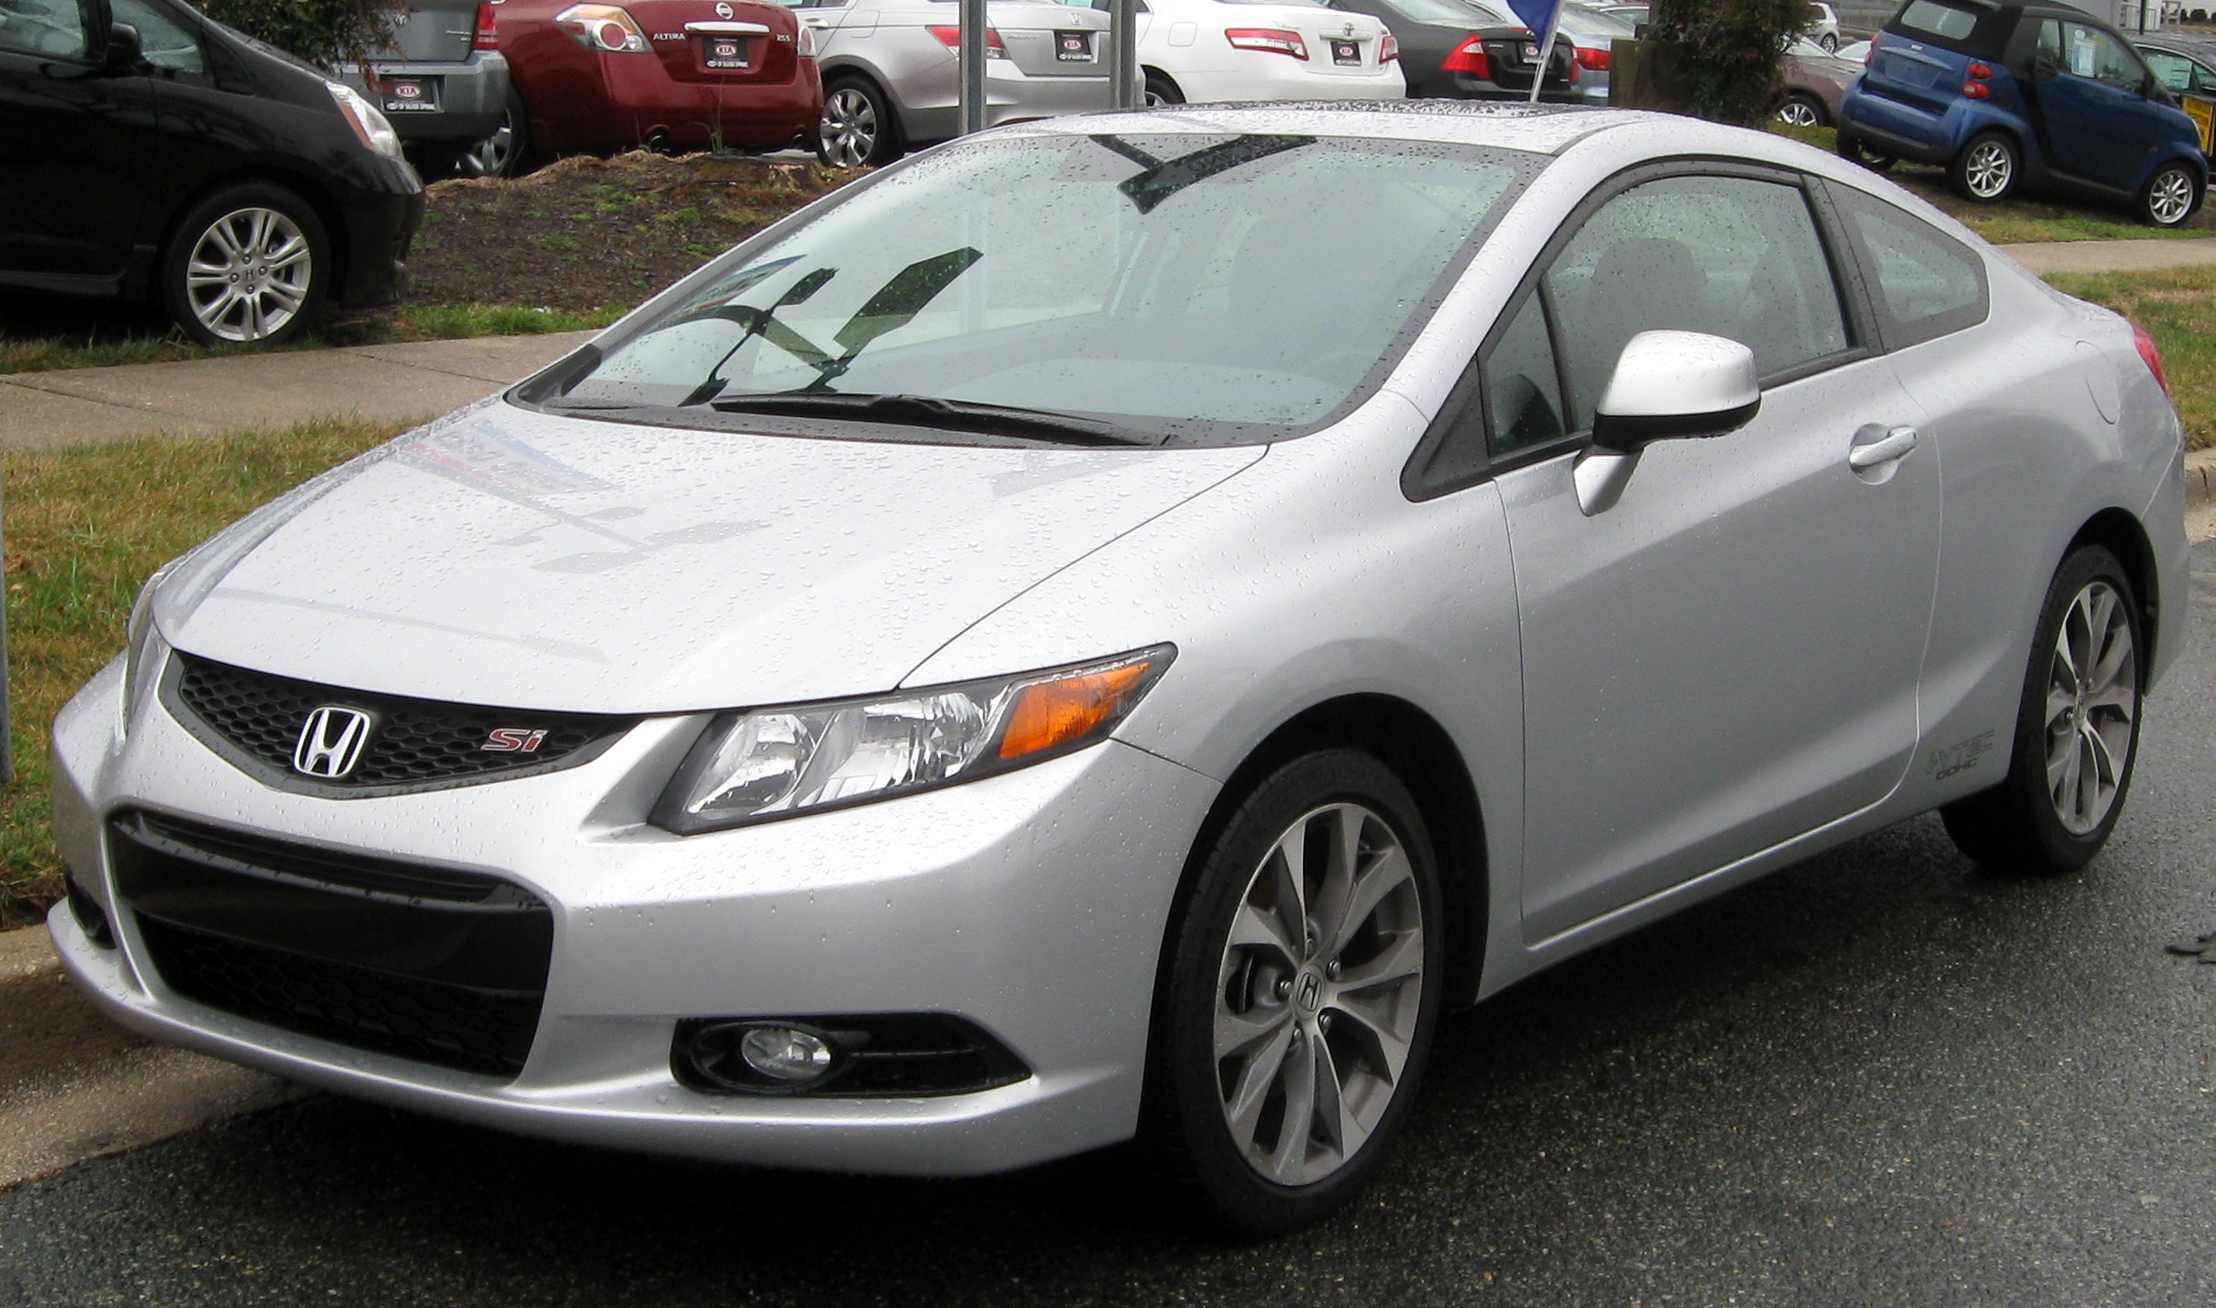 File 2012 Honda Civic Si Coupe 02 29 2012 Jpg Wikipedia